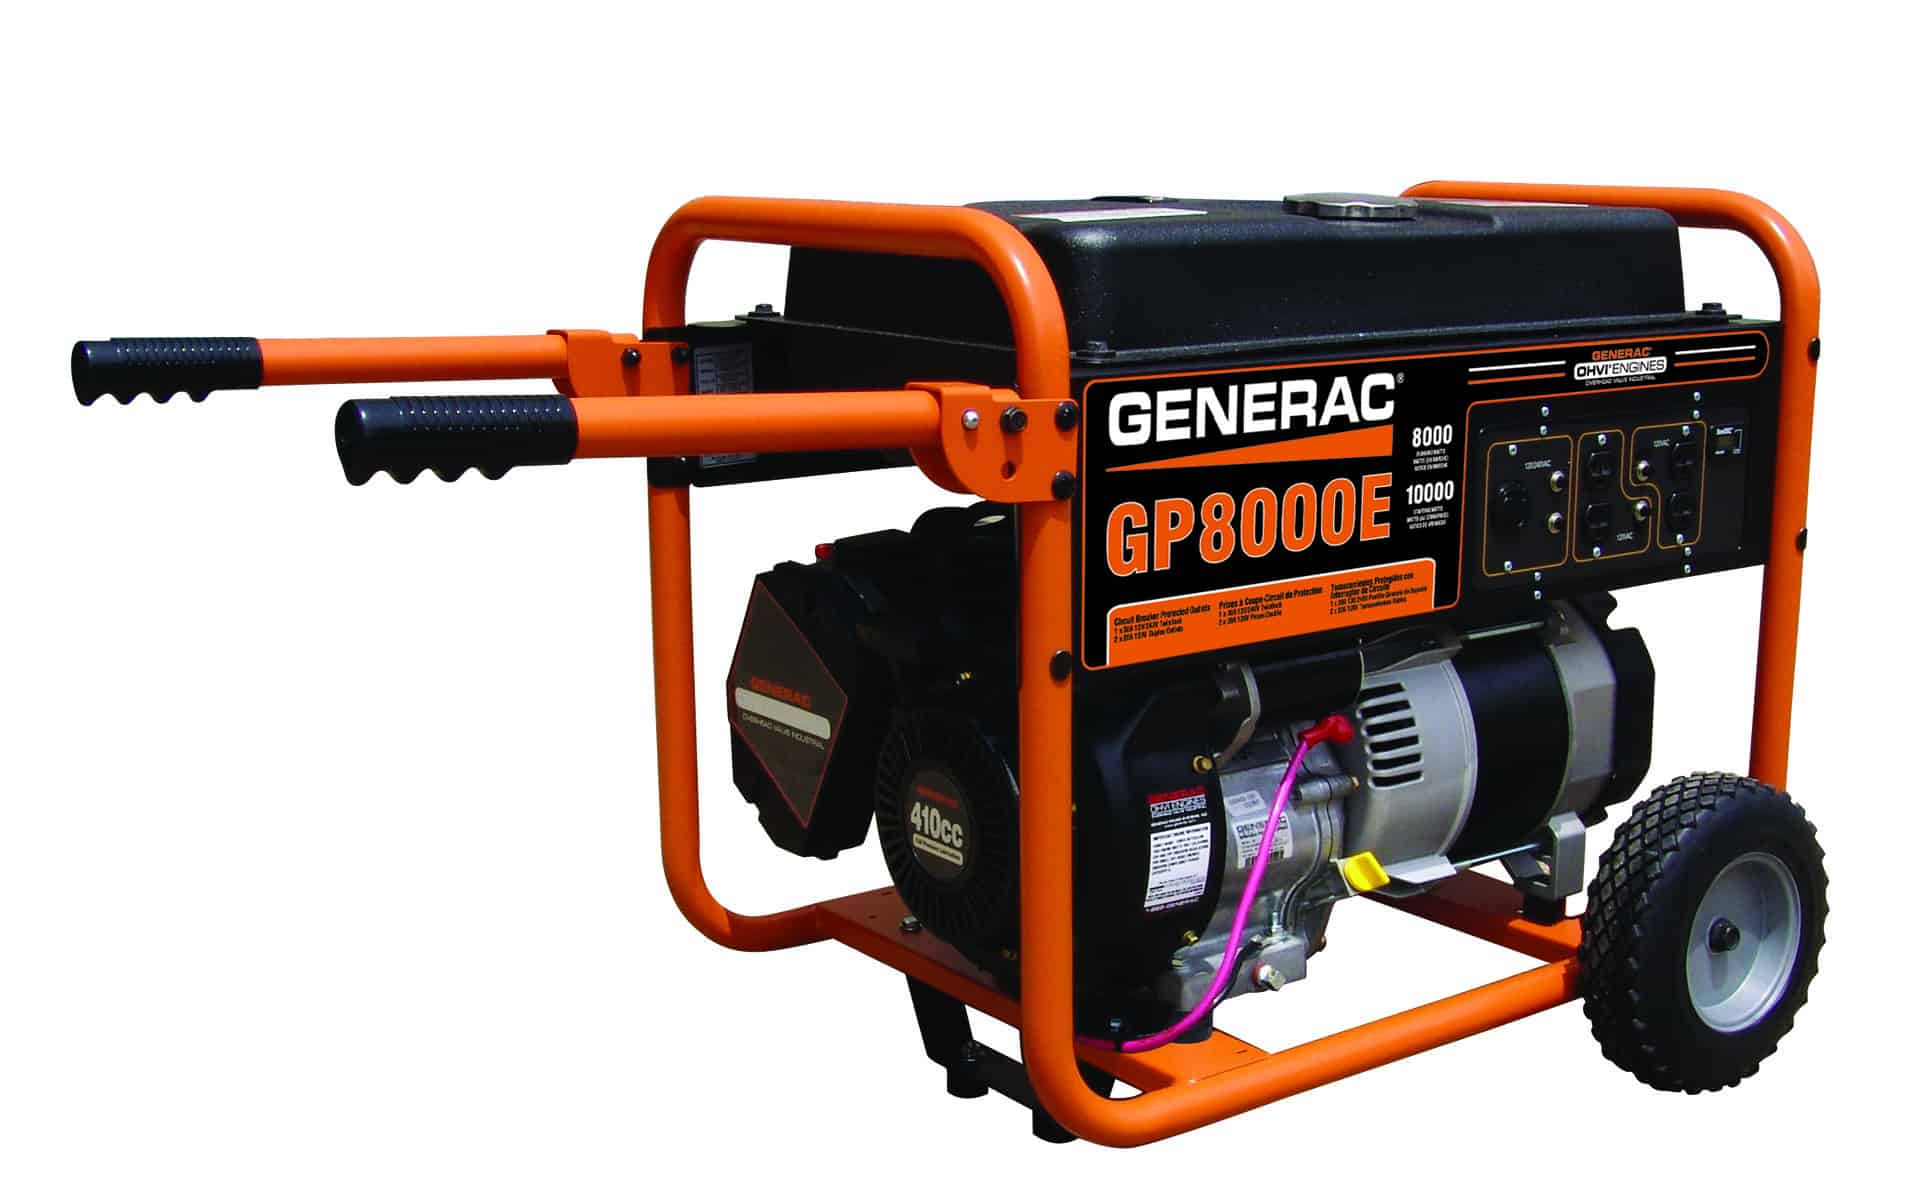 Tips for Choosing the Right Portable Generator